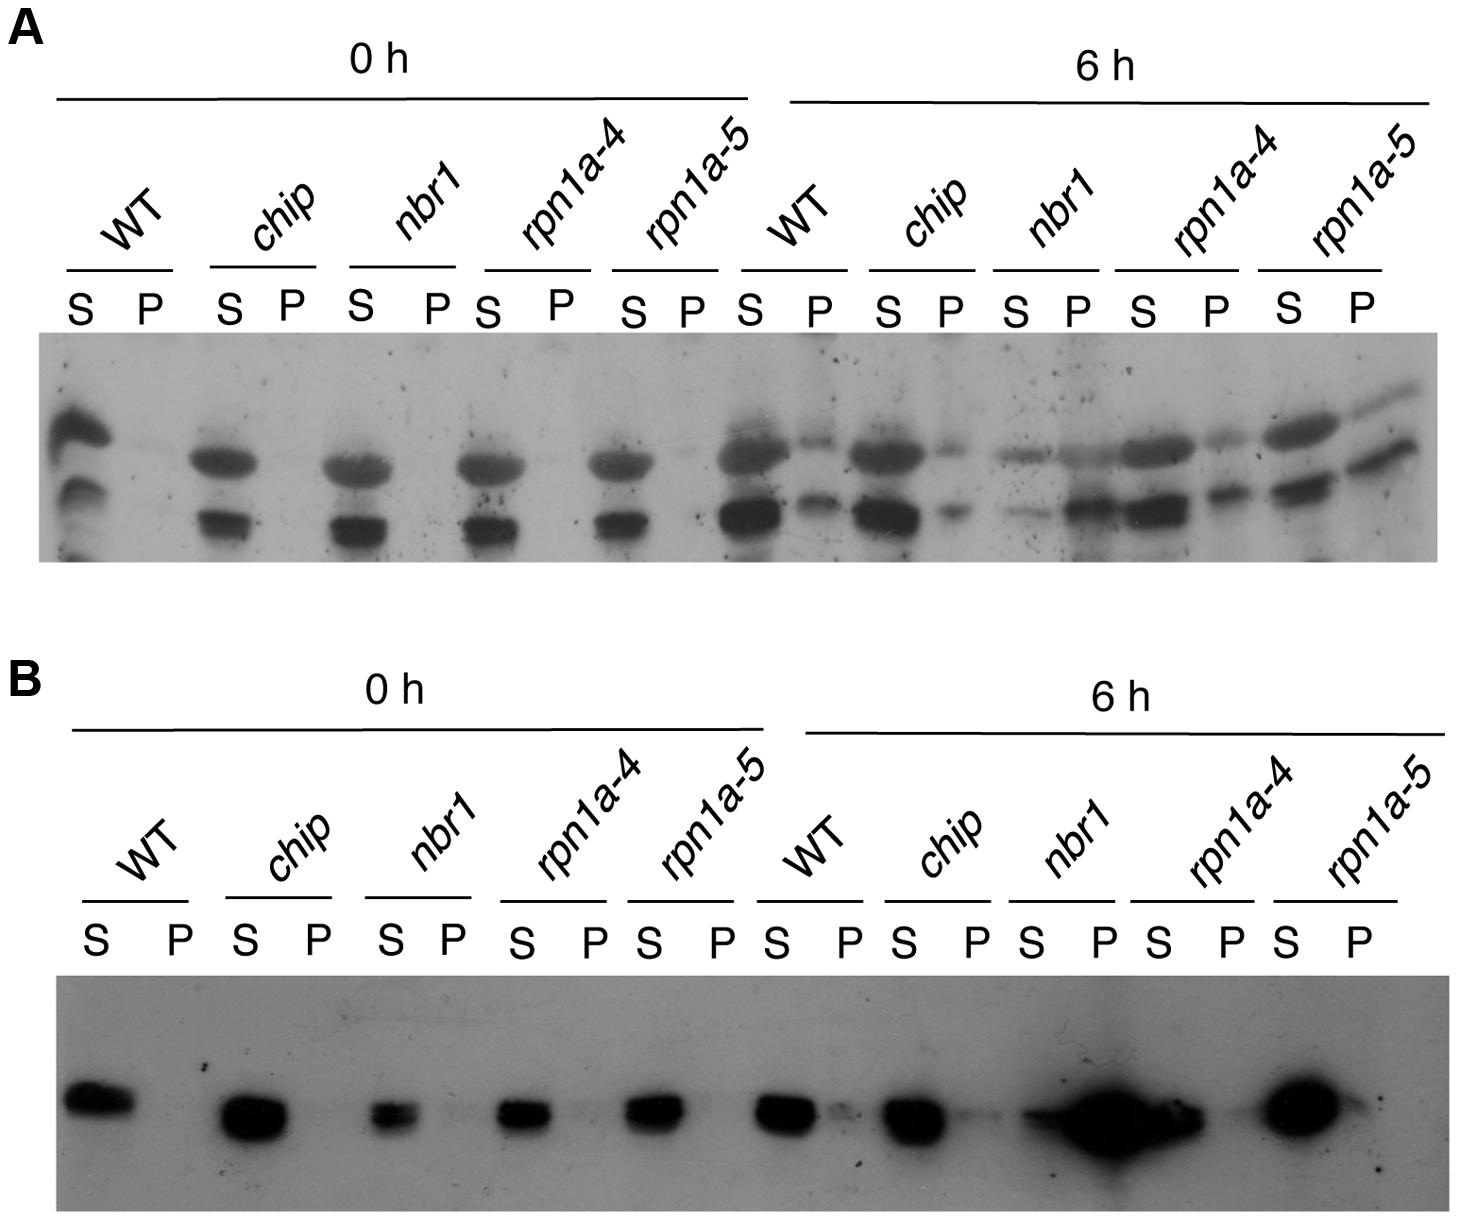 Changes in RCA and catalase proteins in response to heat stress.